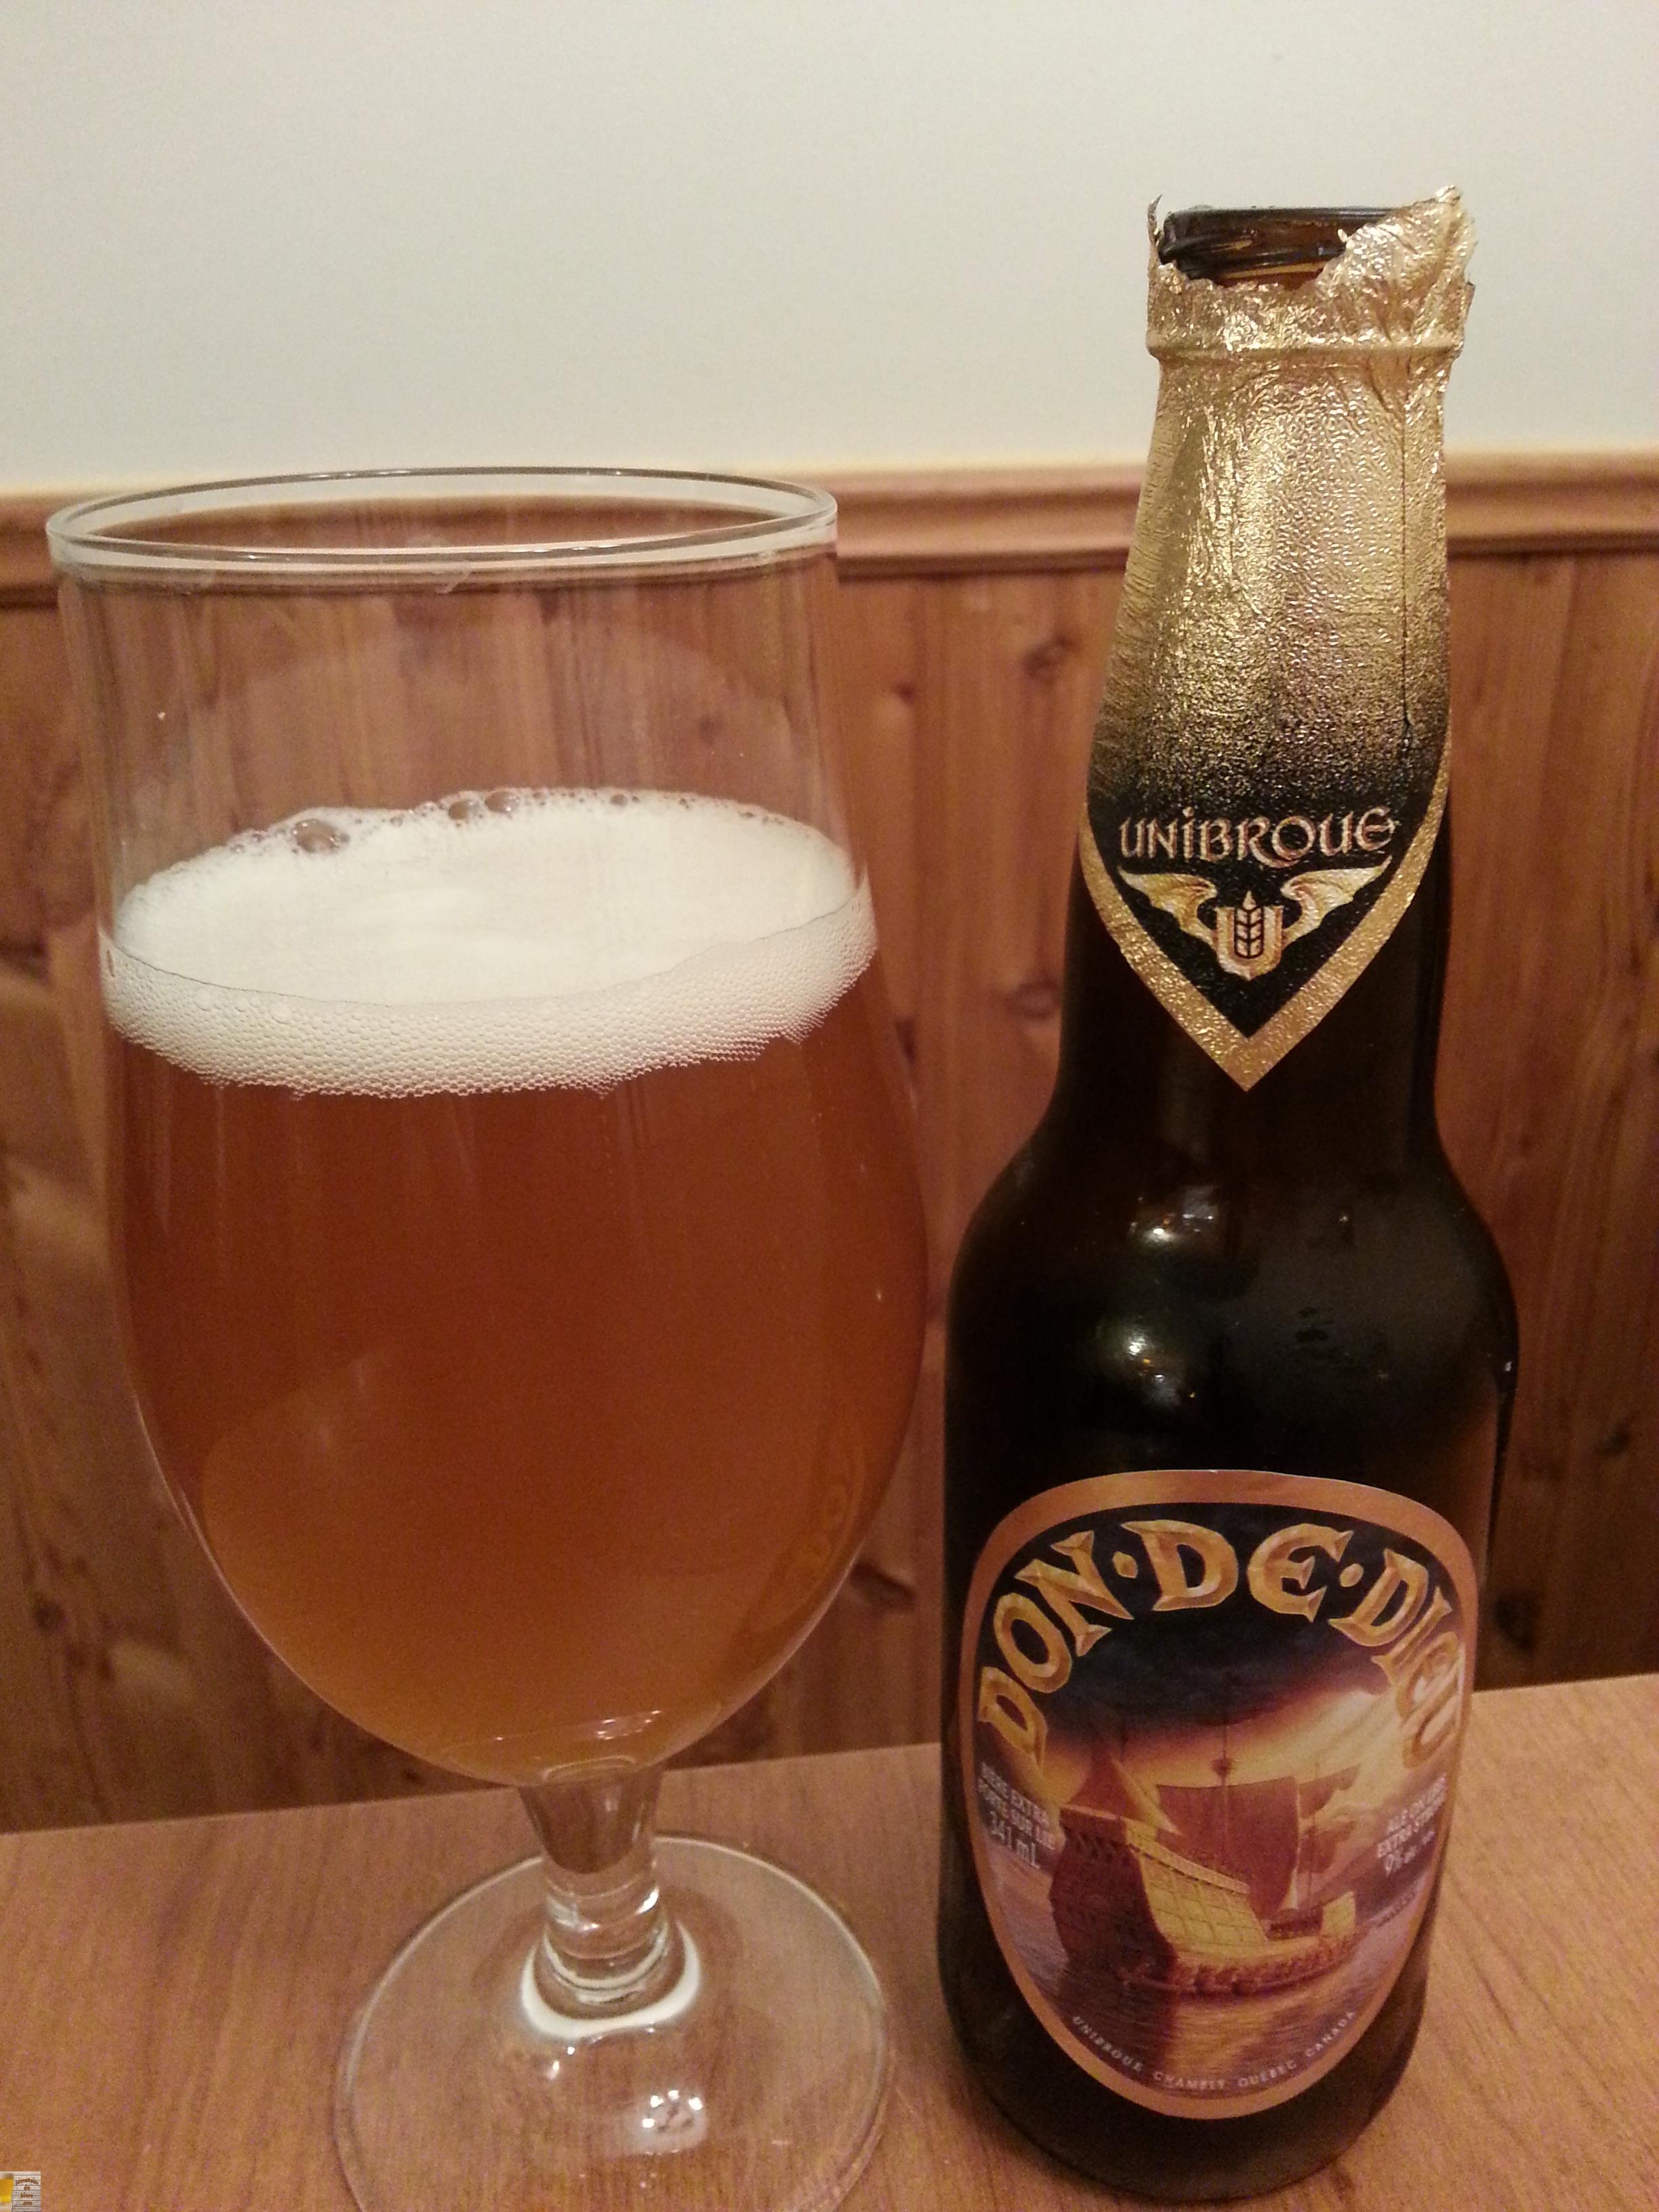 Don de Dieu d'Unibroue